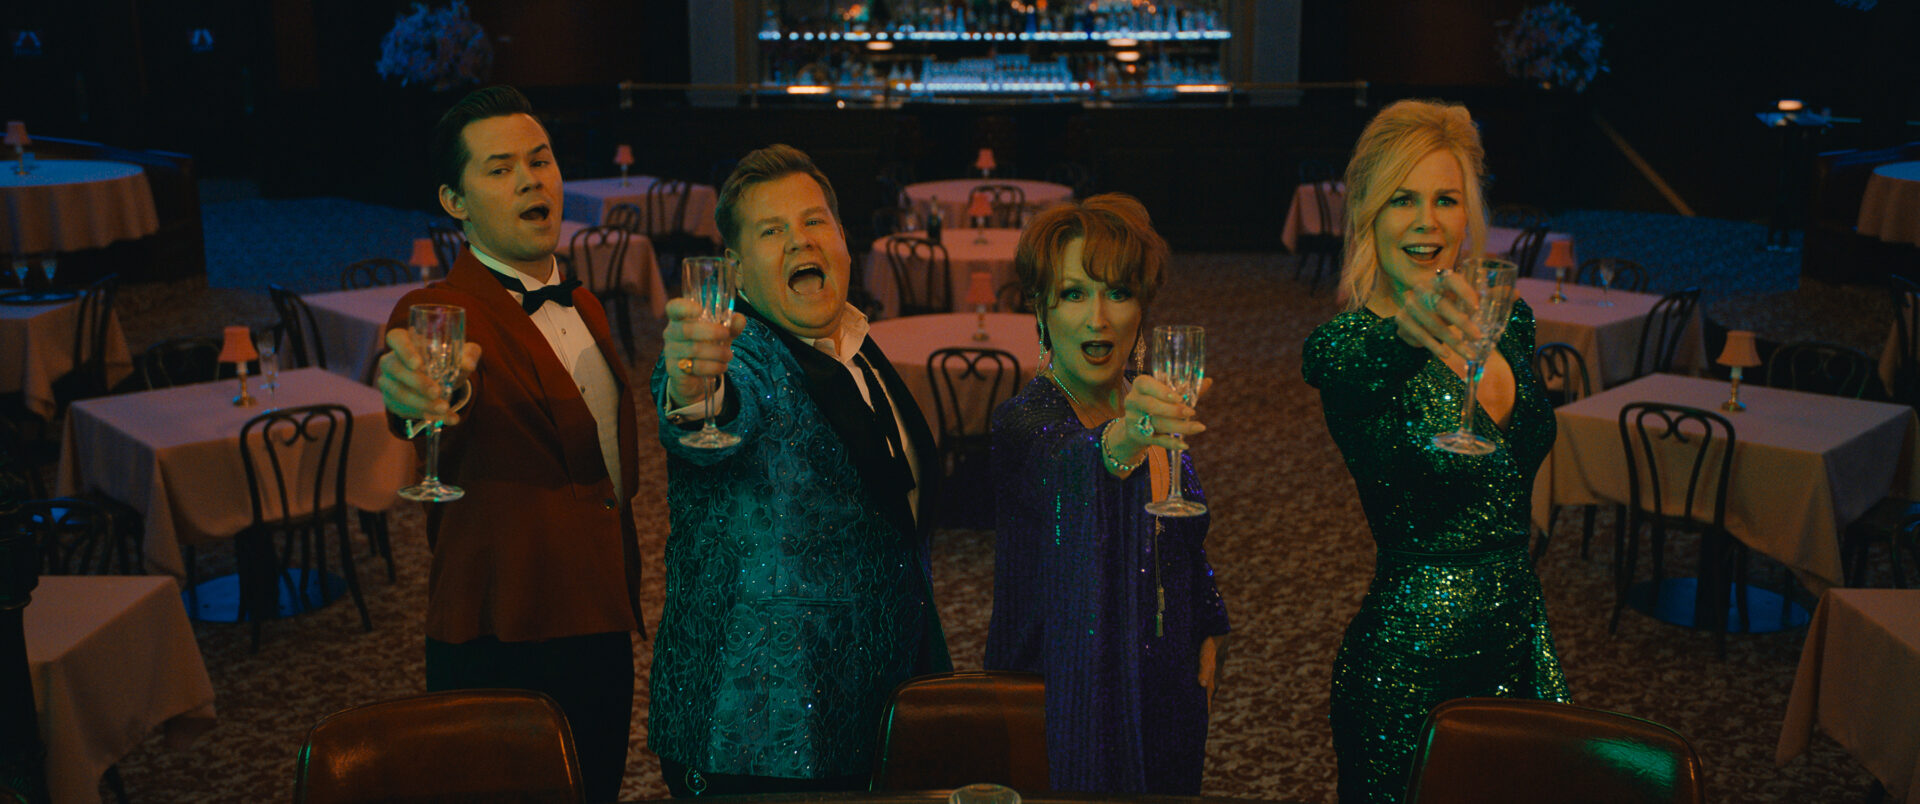 THE PROM (L to R) ANDREW RANNELLS as TRENT OLIVER, JAMES CORDEN as BARRY GLICKMAN, MERYL STREEP as DEE DEE ALLEN, NICOLE KIDMAN as ANGIE DICKINSON THE PROM. Cr. NETFLIX © 2020